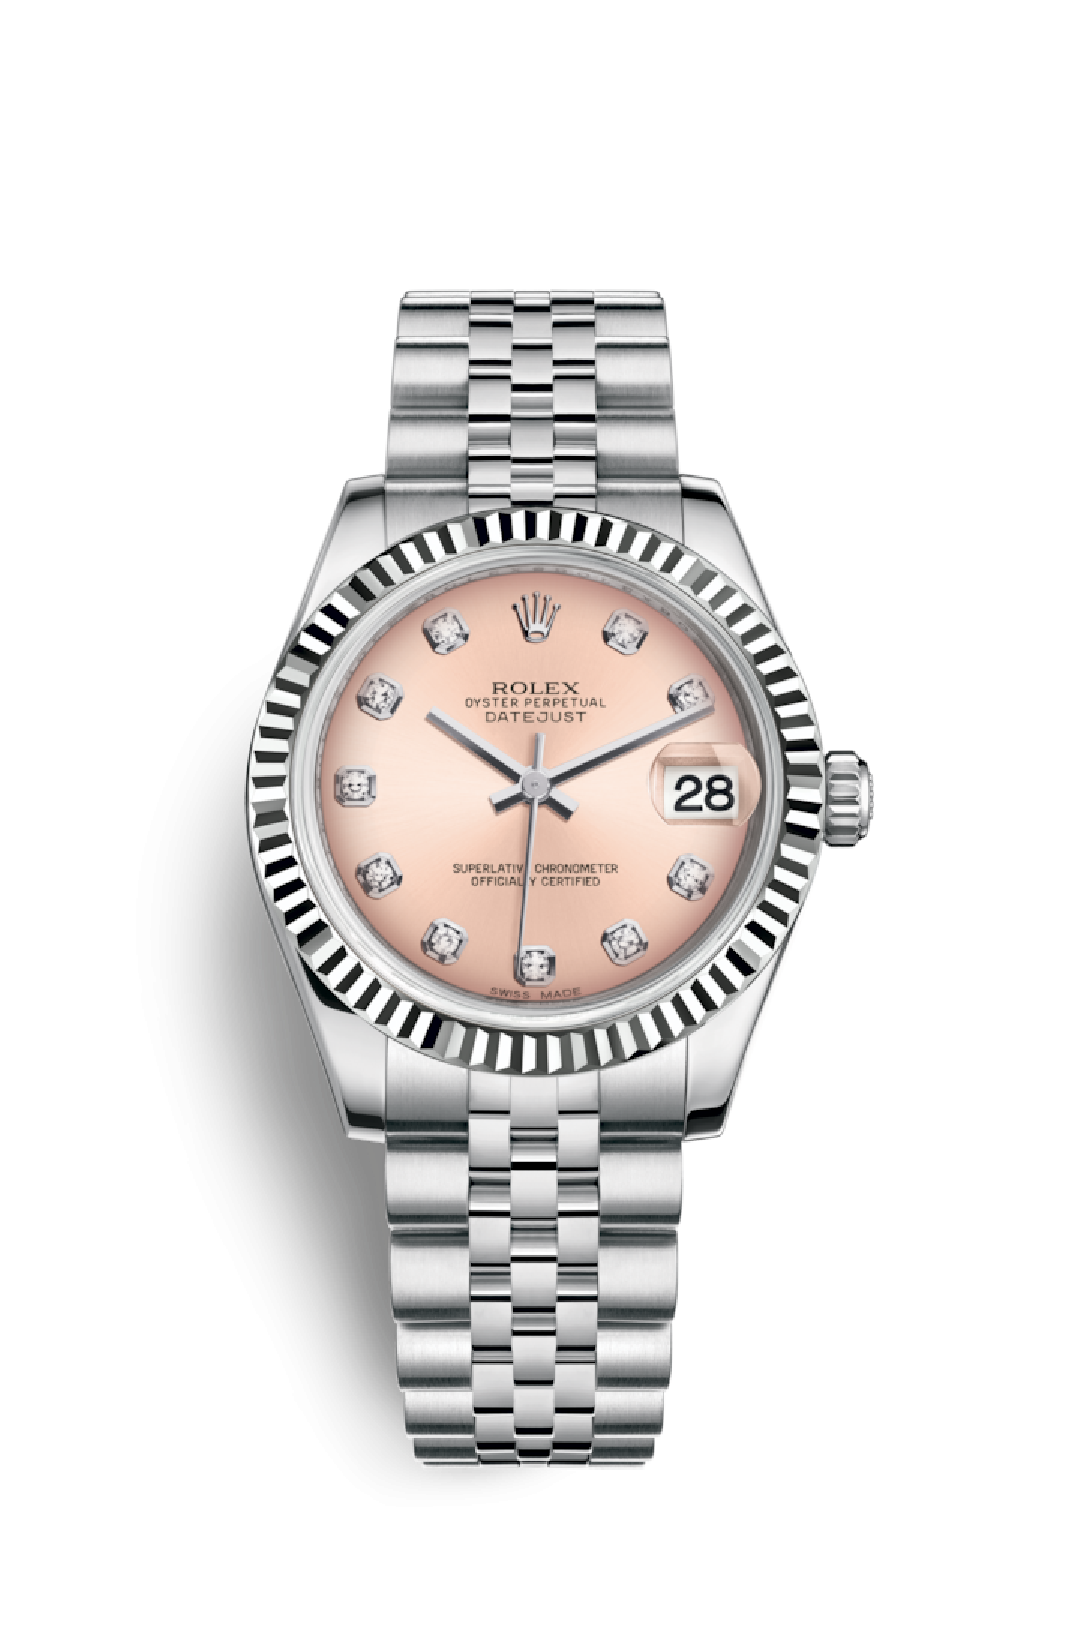 c0eb4480aea Datejust 31 mm Cadran rose 10 diamants bracelet jubile - Rivierawatch